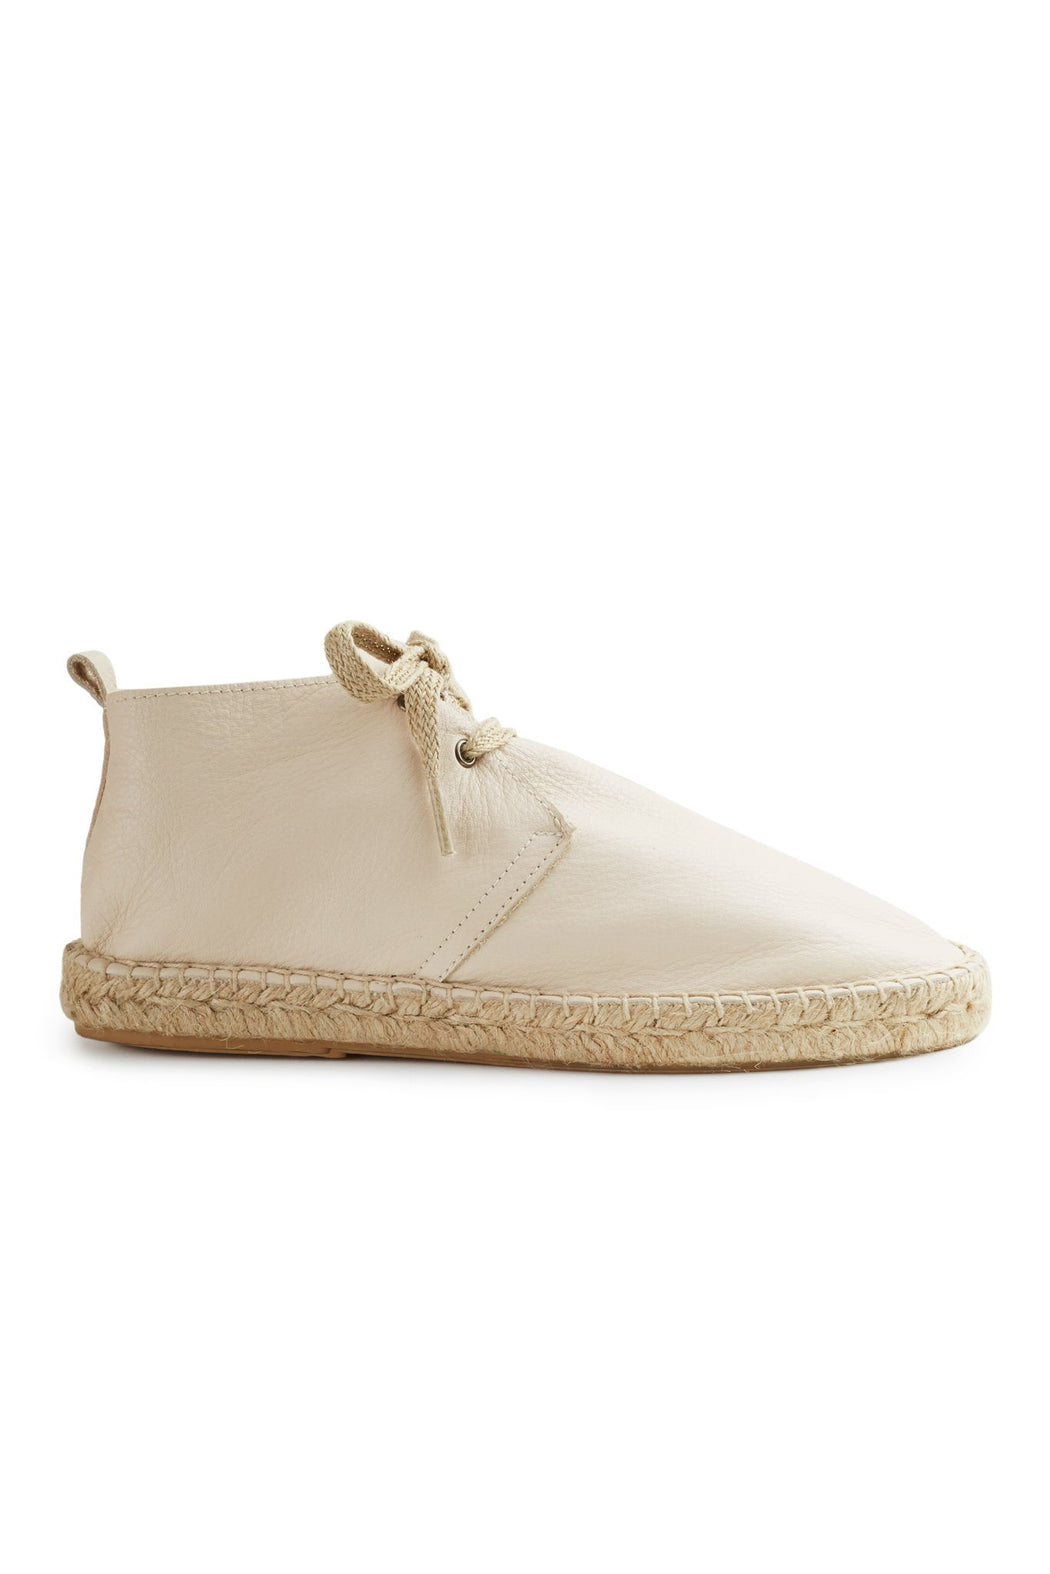 women's leather bootie espadrille in creme